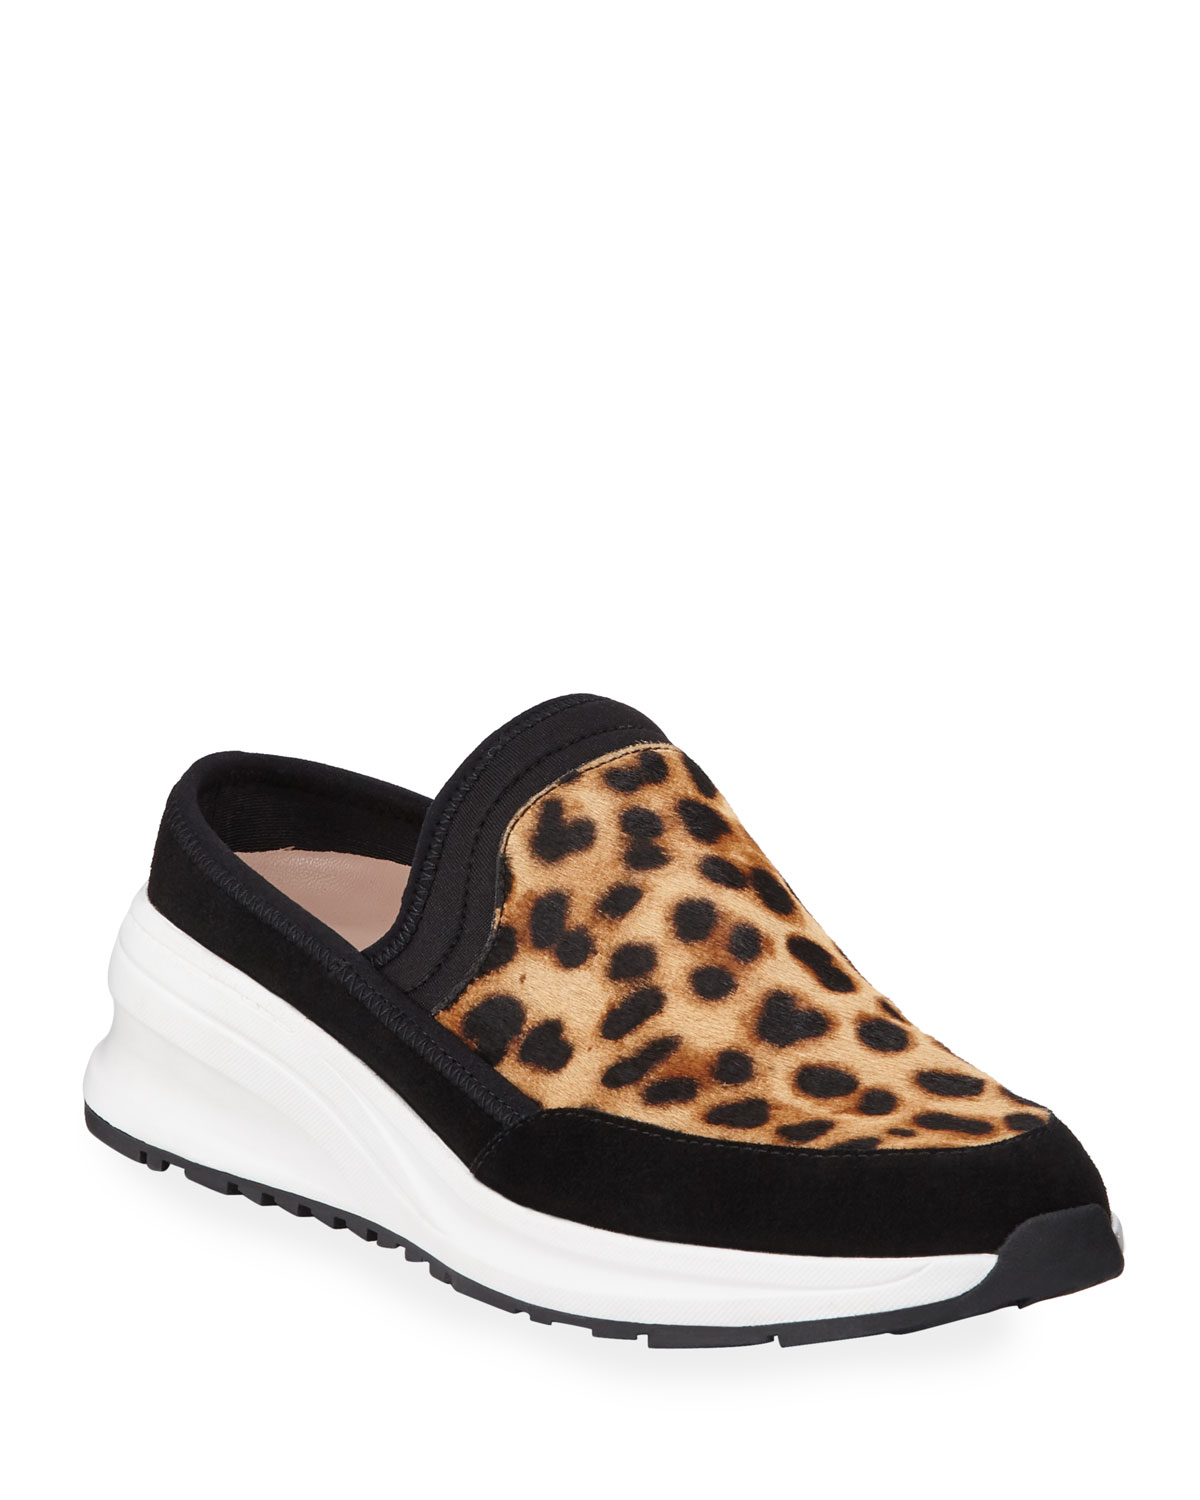 Zetta Leopard Slip-On Mule Sneakers